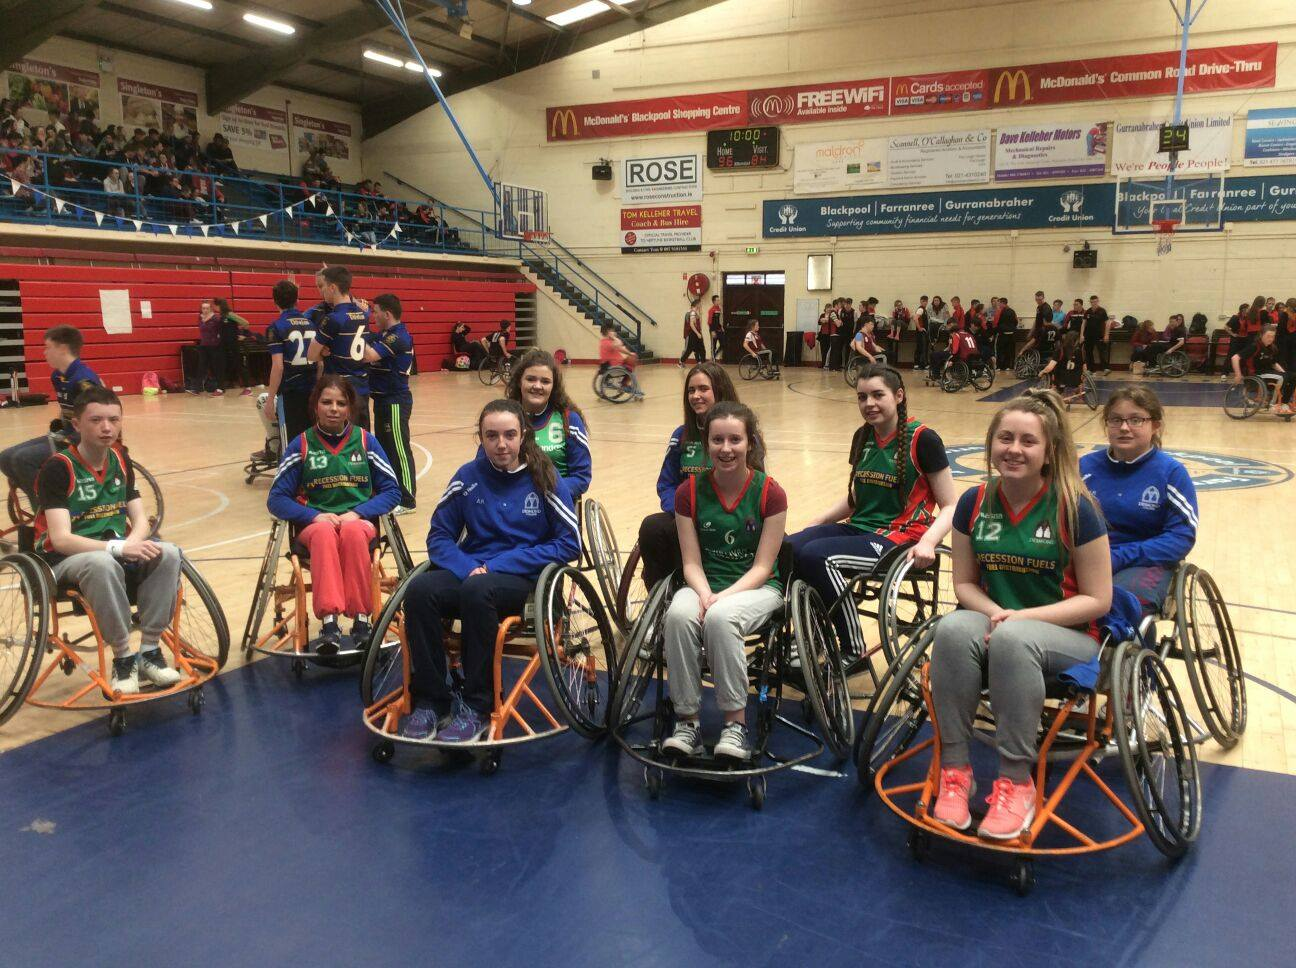 21st April 2016: Desmond College TY Students compete in Munster Wheelchair Basketball Competition. Active Schools Week 2016. #ActiveThursday